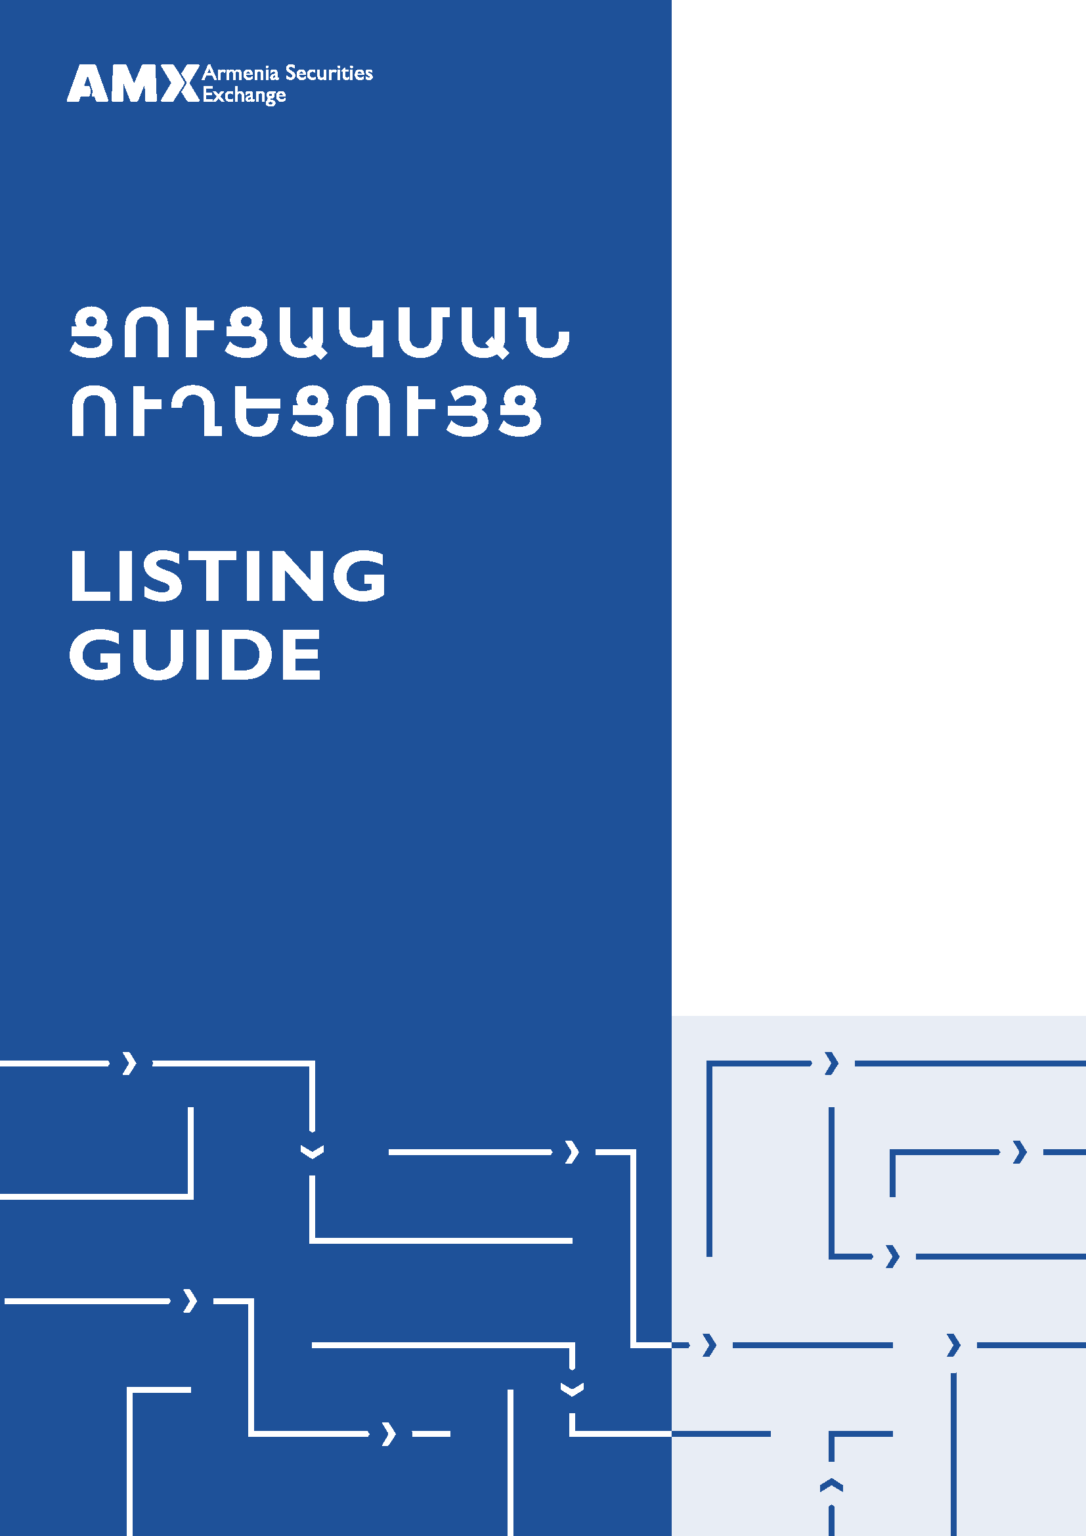 AMX listing guide cover